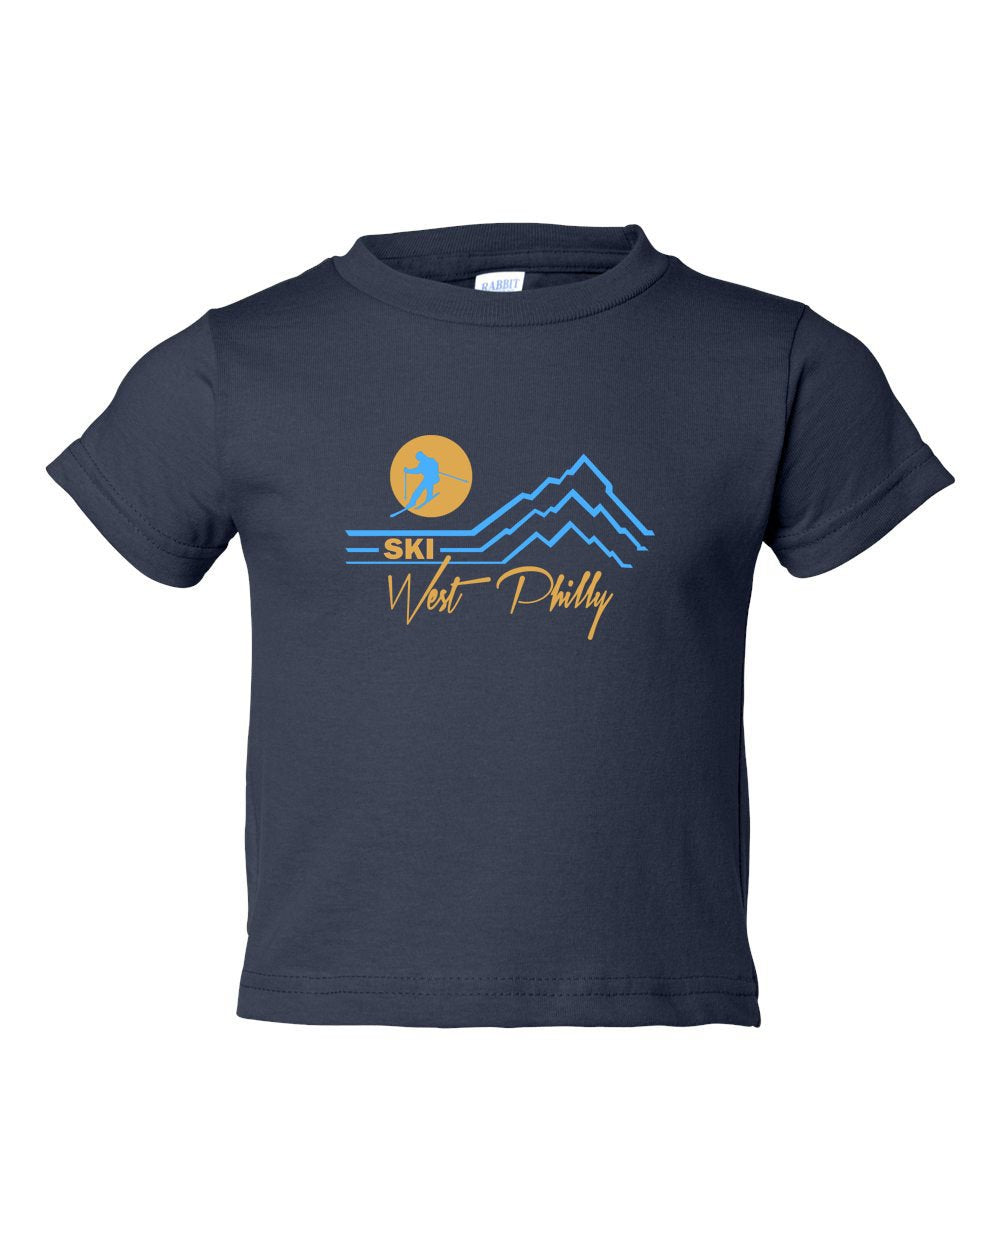 Ski West Philly TODDLER T-Shirt